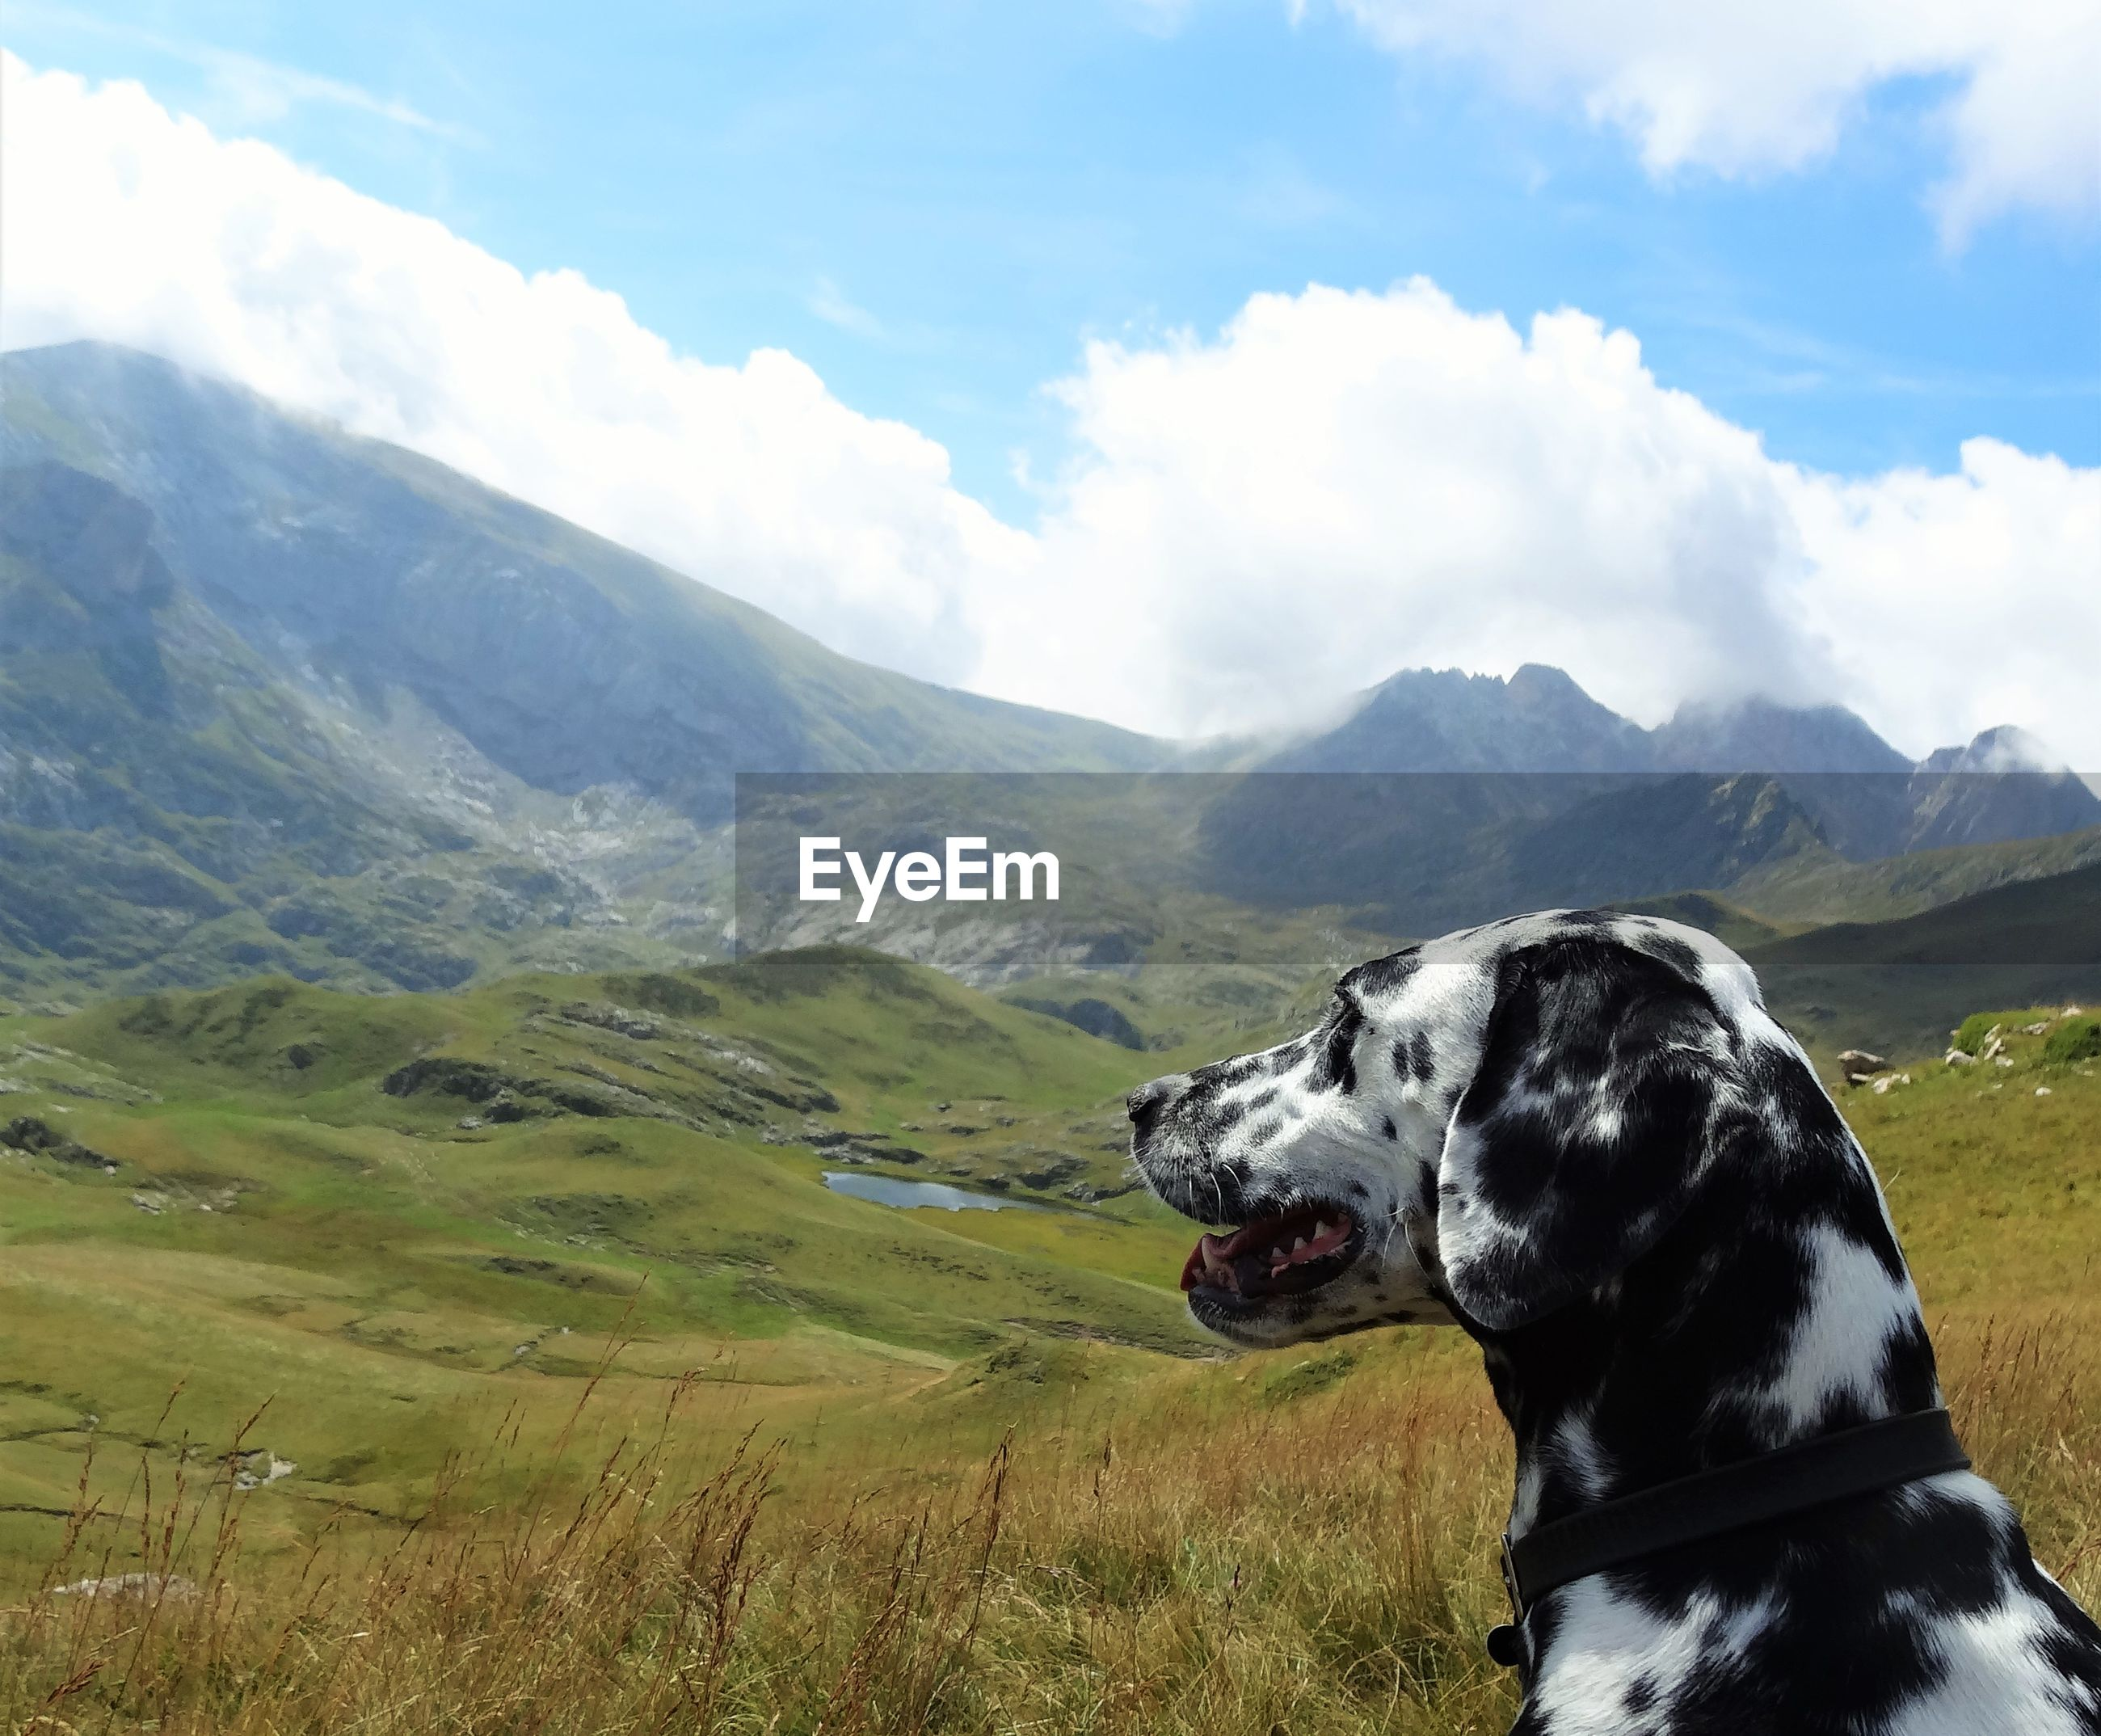 Dalmatian looking at mountains against sky